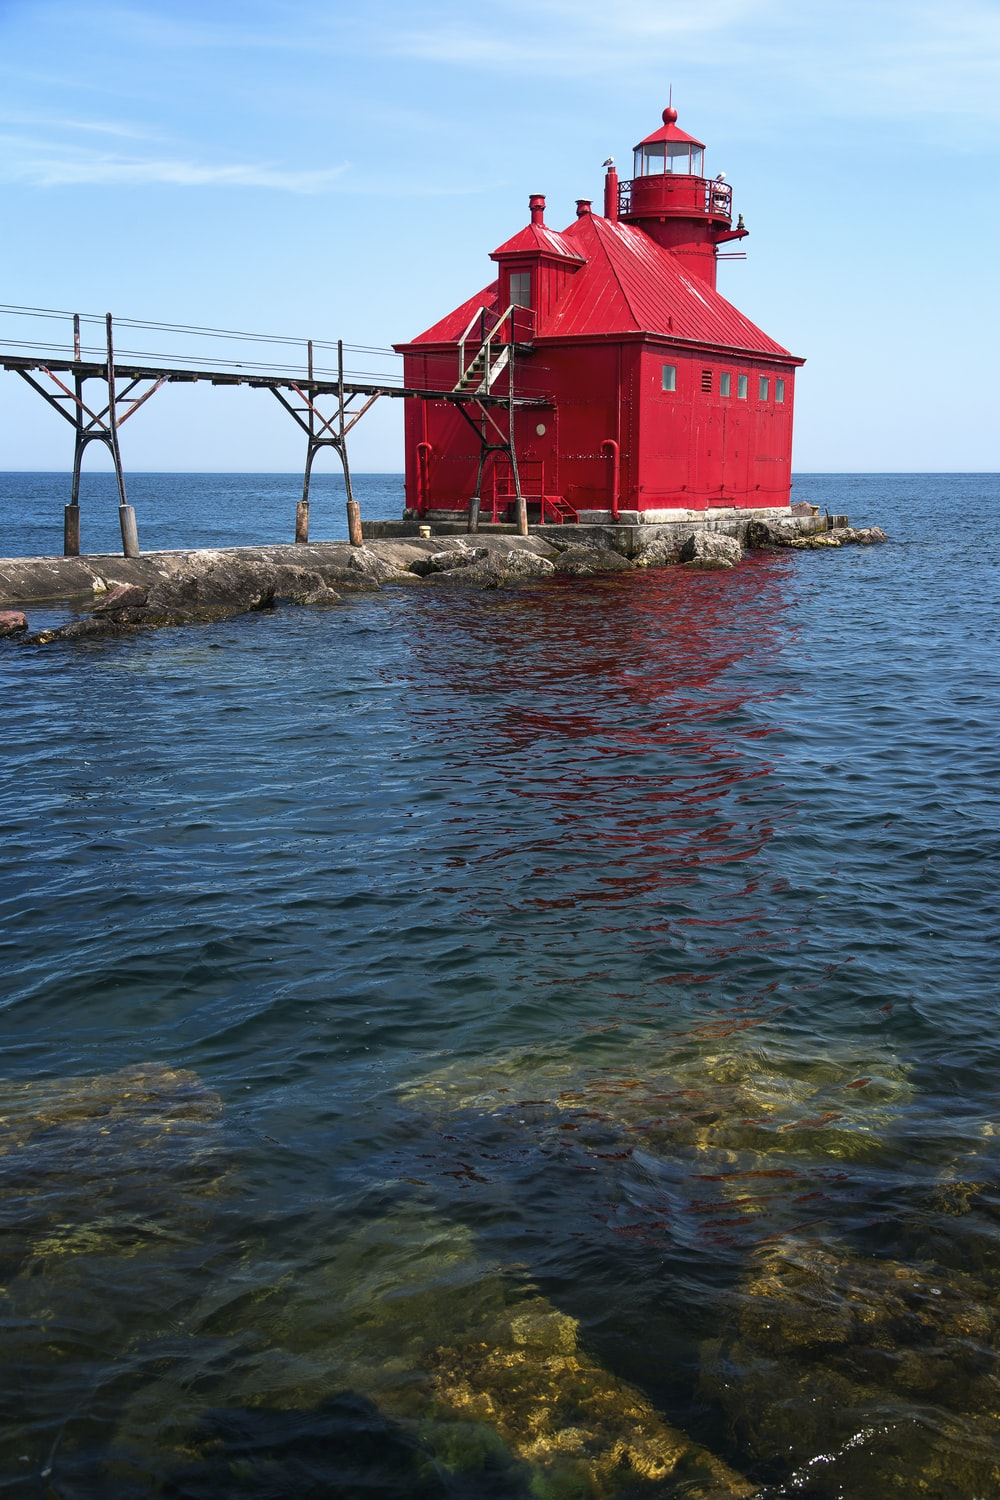 red and white wooden house beside body of water during daytime